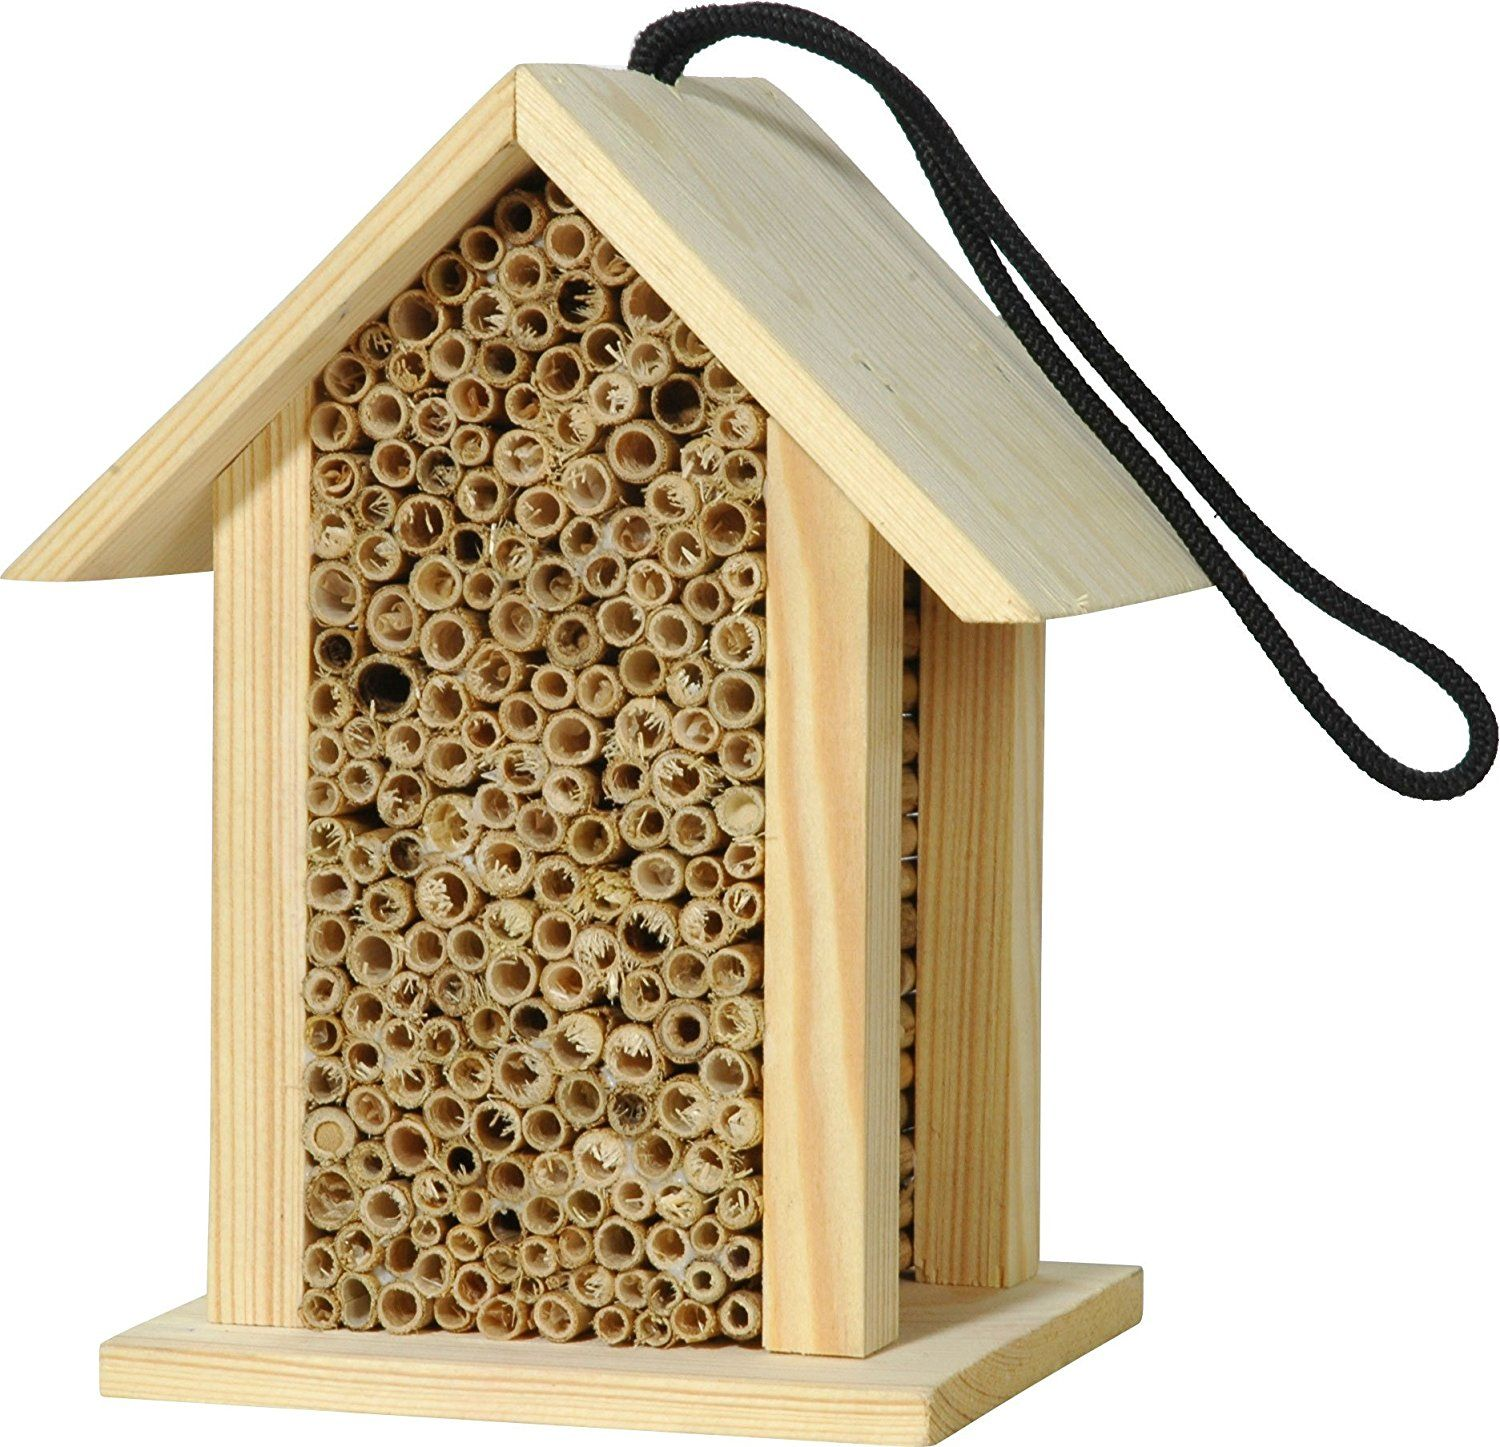 Insektenhotel Ebay Luxus Insektenhotels 22260e For Bees With Reeds Insect